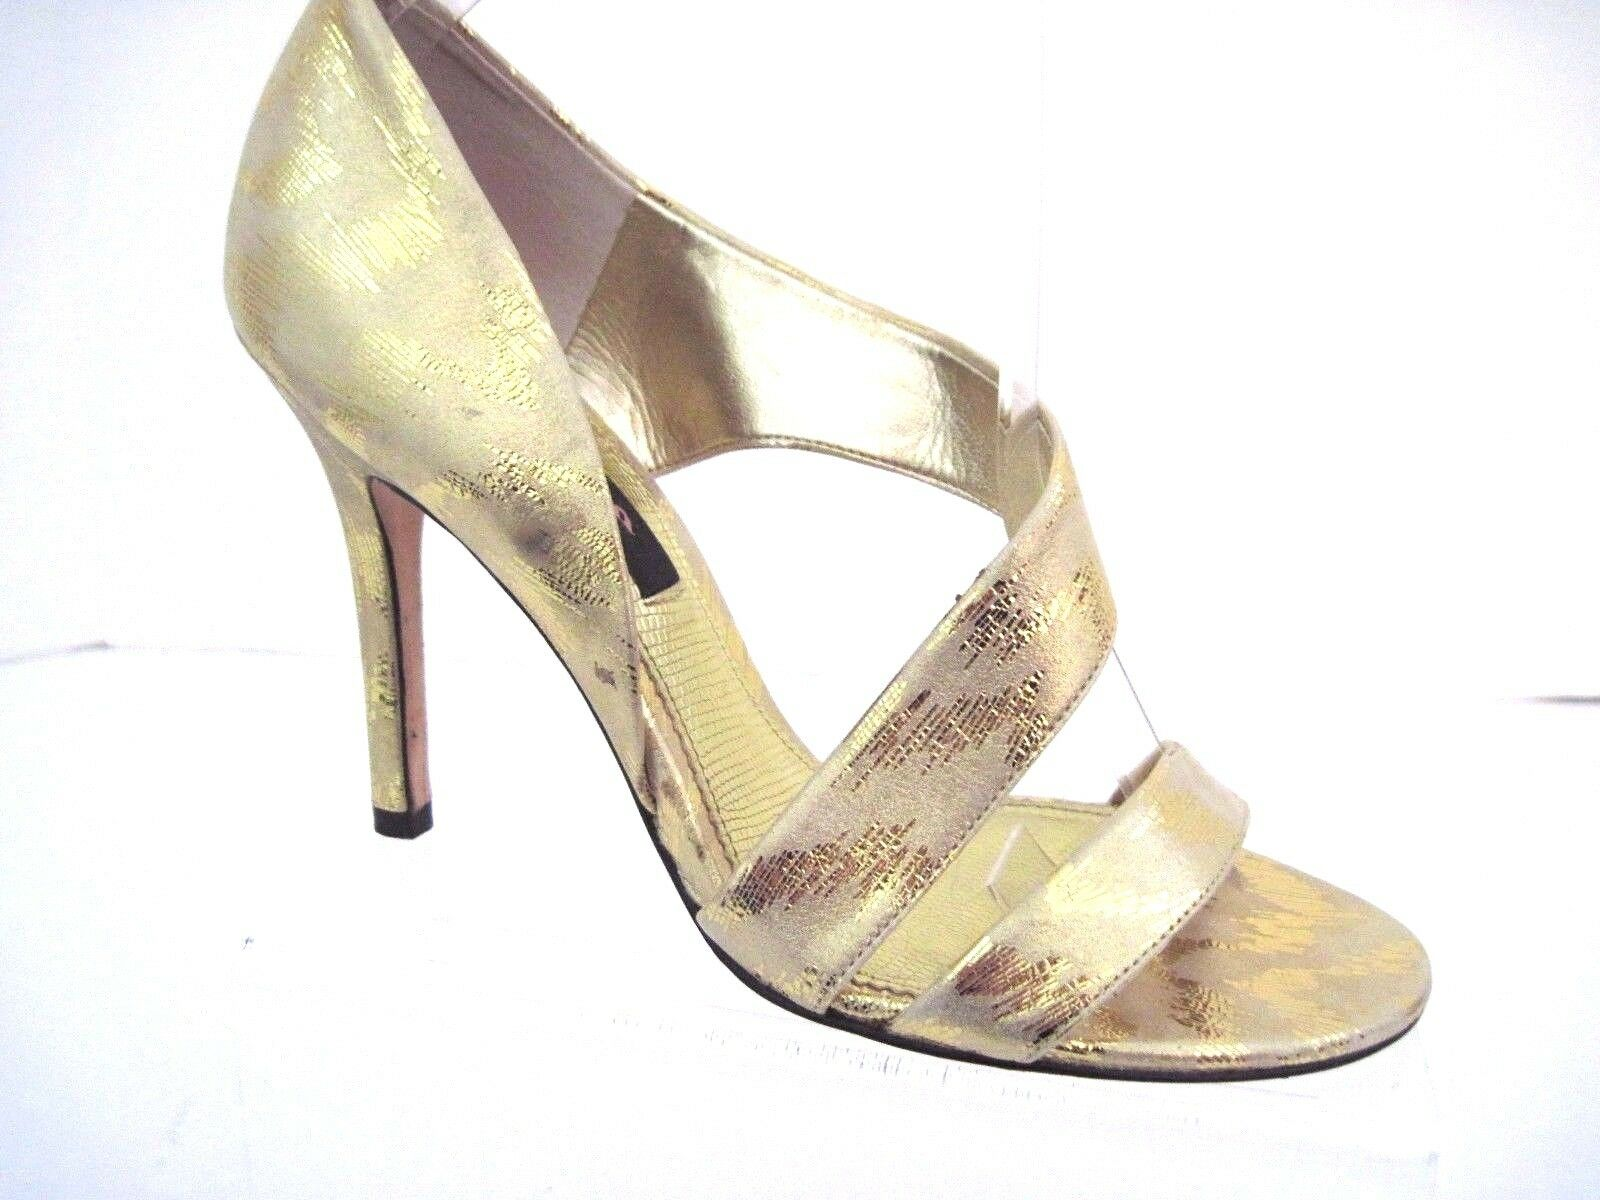 NINA New York Meatllic Champagne Gold Leather Open Toe Heels Size 8 M